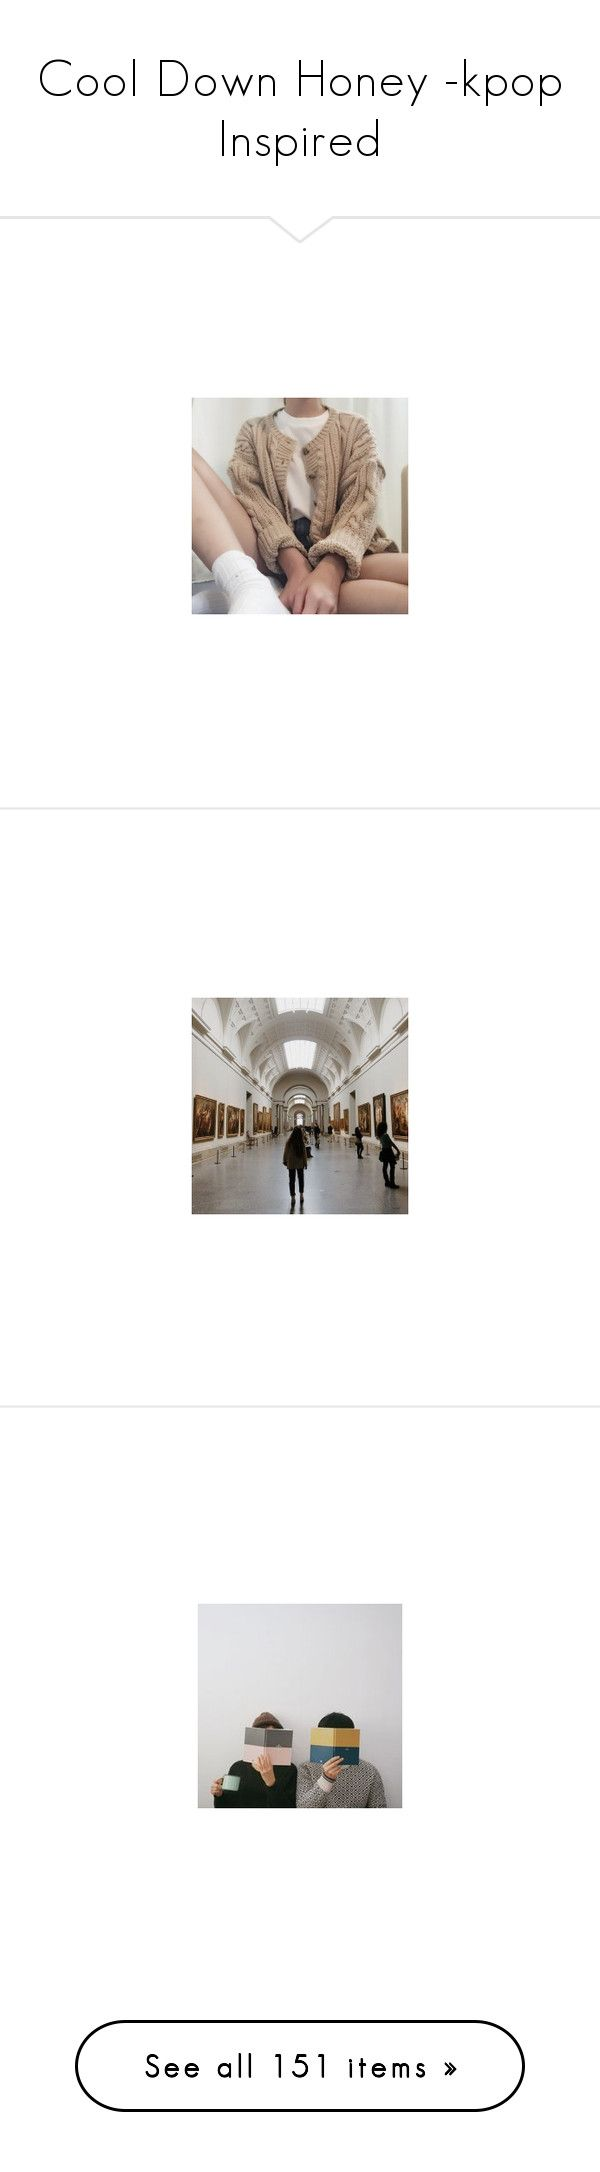 """""""Cool Down Honey -kpop Inspired"""" by blue-kiwi ❤ liked on Polyvore featuring pictures, brown, icons, people, filler, photos, backgrounds, pics, art and filler photos"""